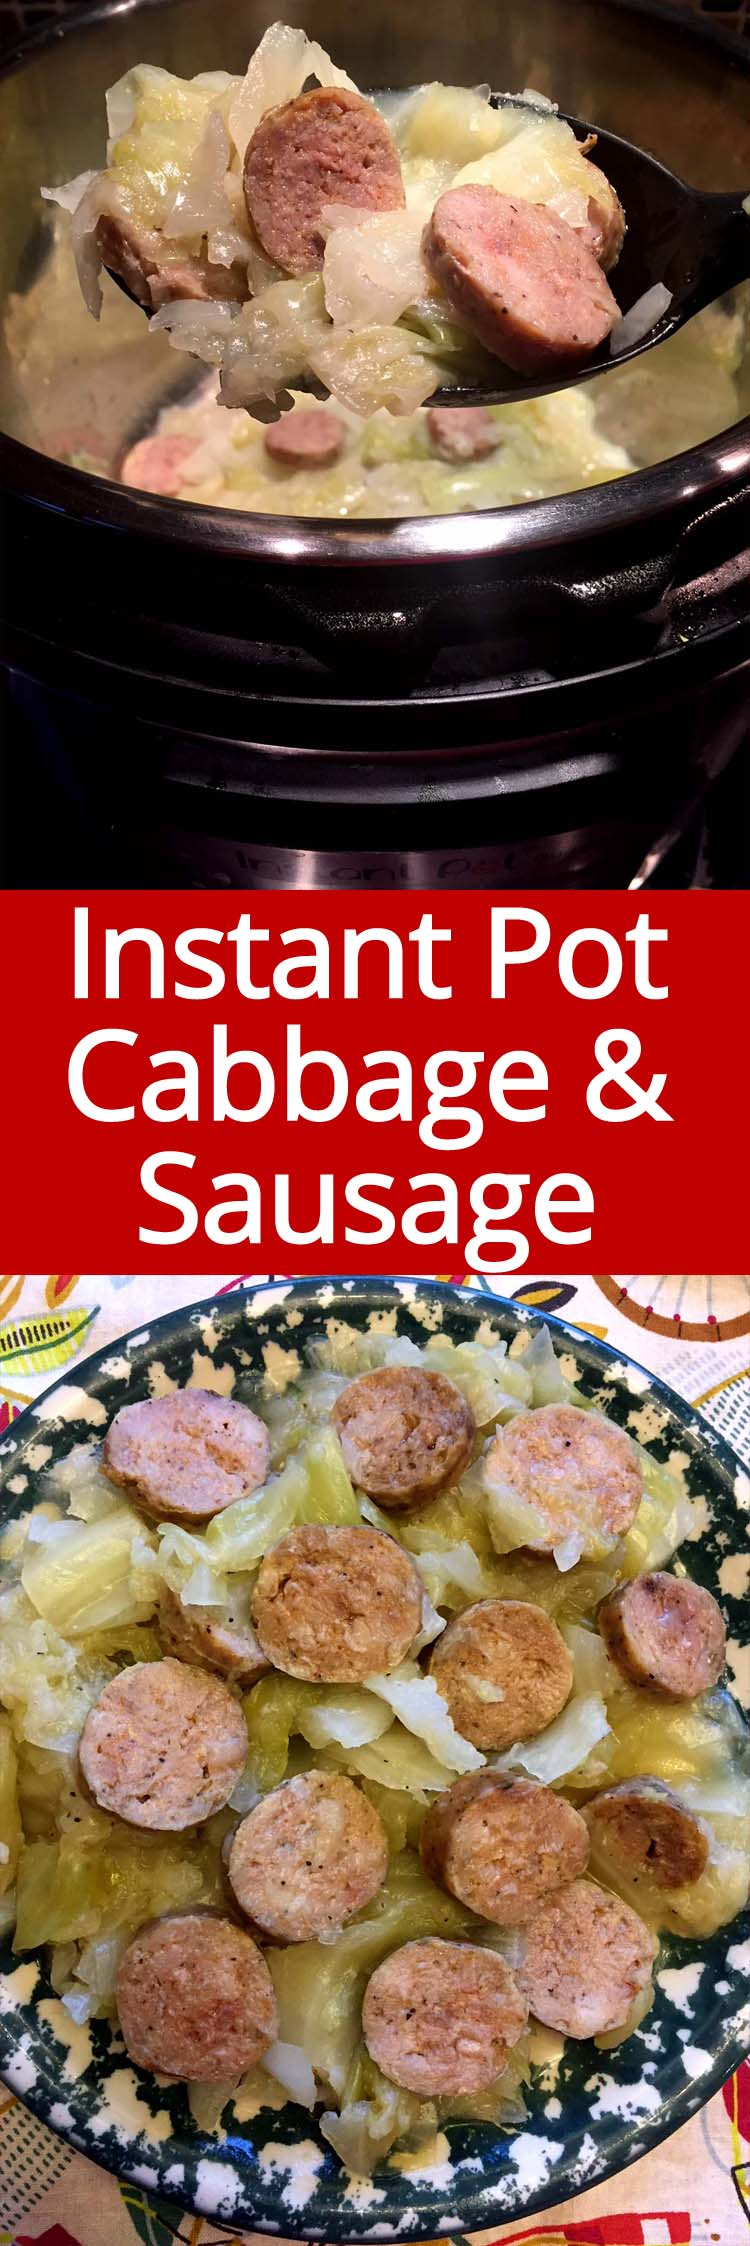 Instant Pot cabbage and sausage is the easiest dinner ever! Ready in 10 minutes! I love my Instant Pot!